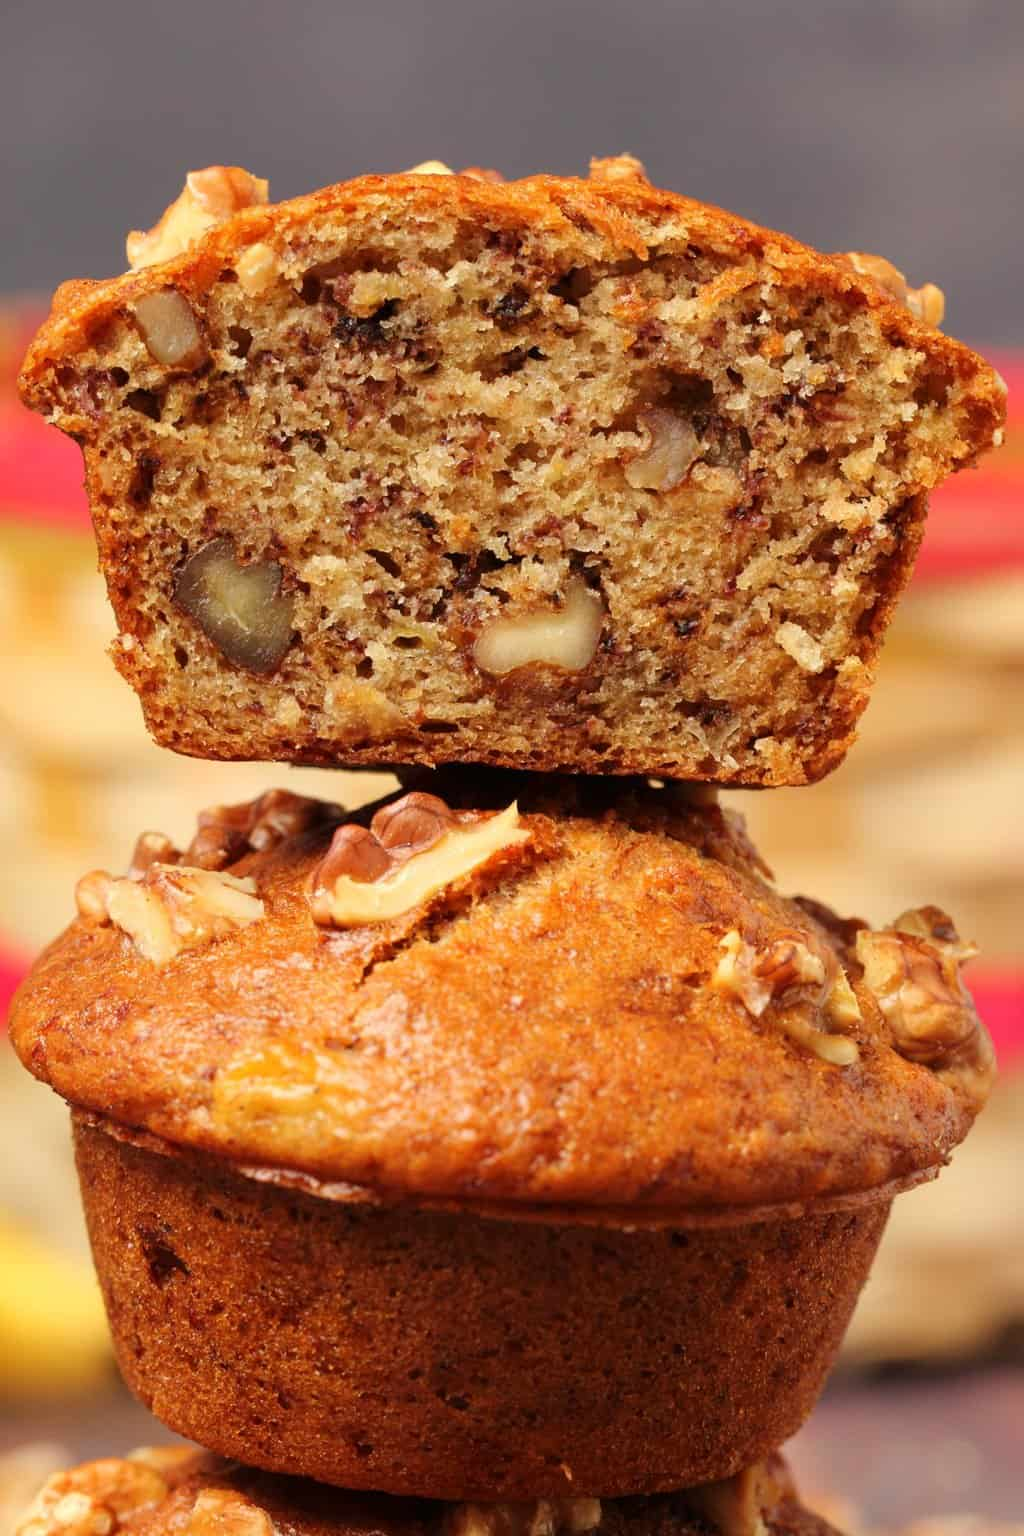 Vegan banana muffins stacked up on top of each other with the top muffin cut in half to show the center.